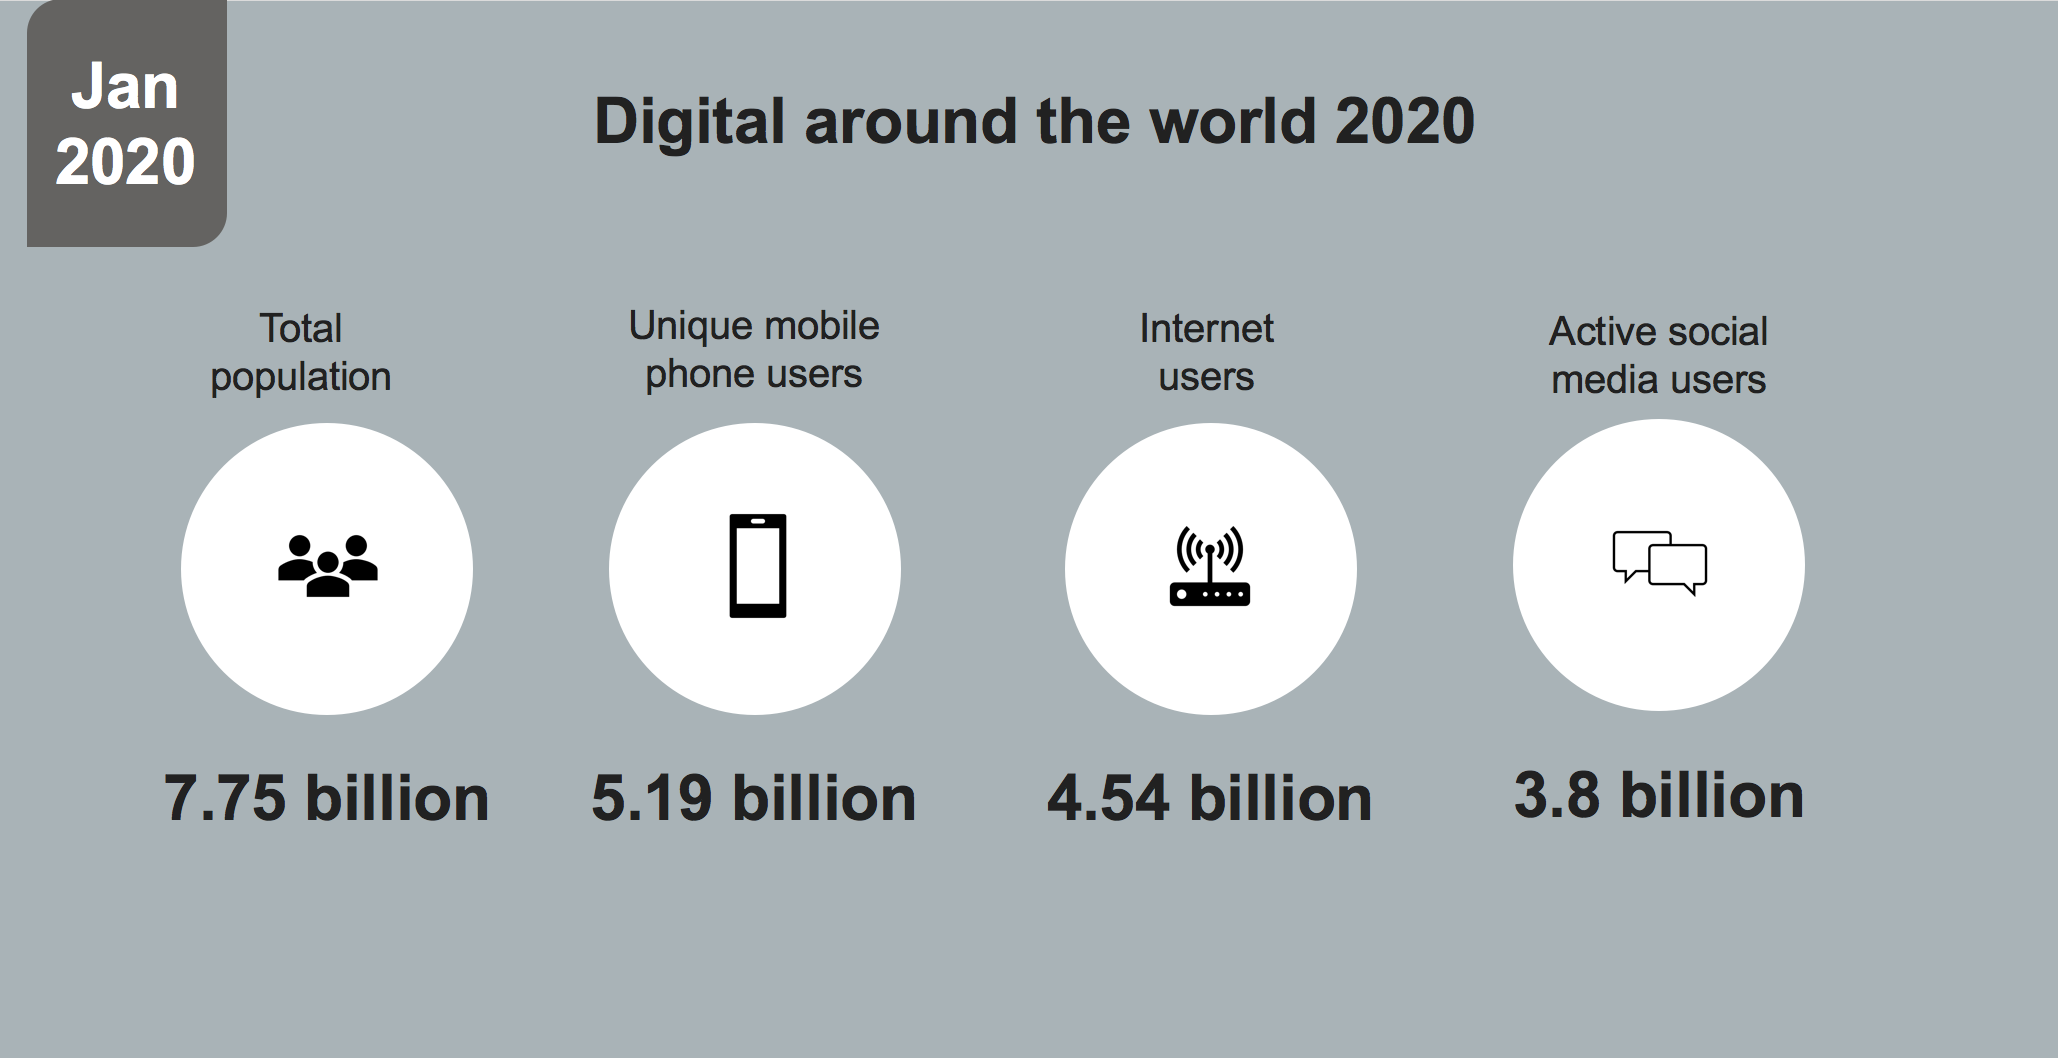 Digital around the world 2020